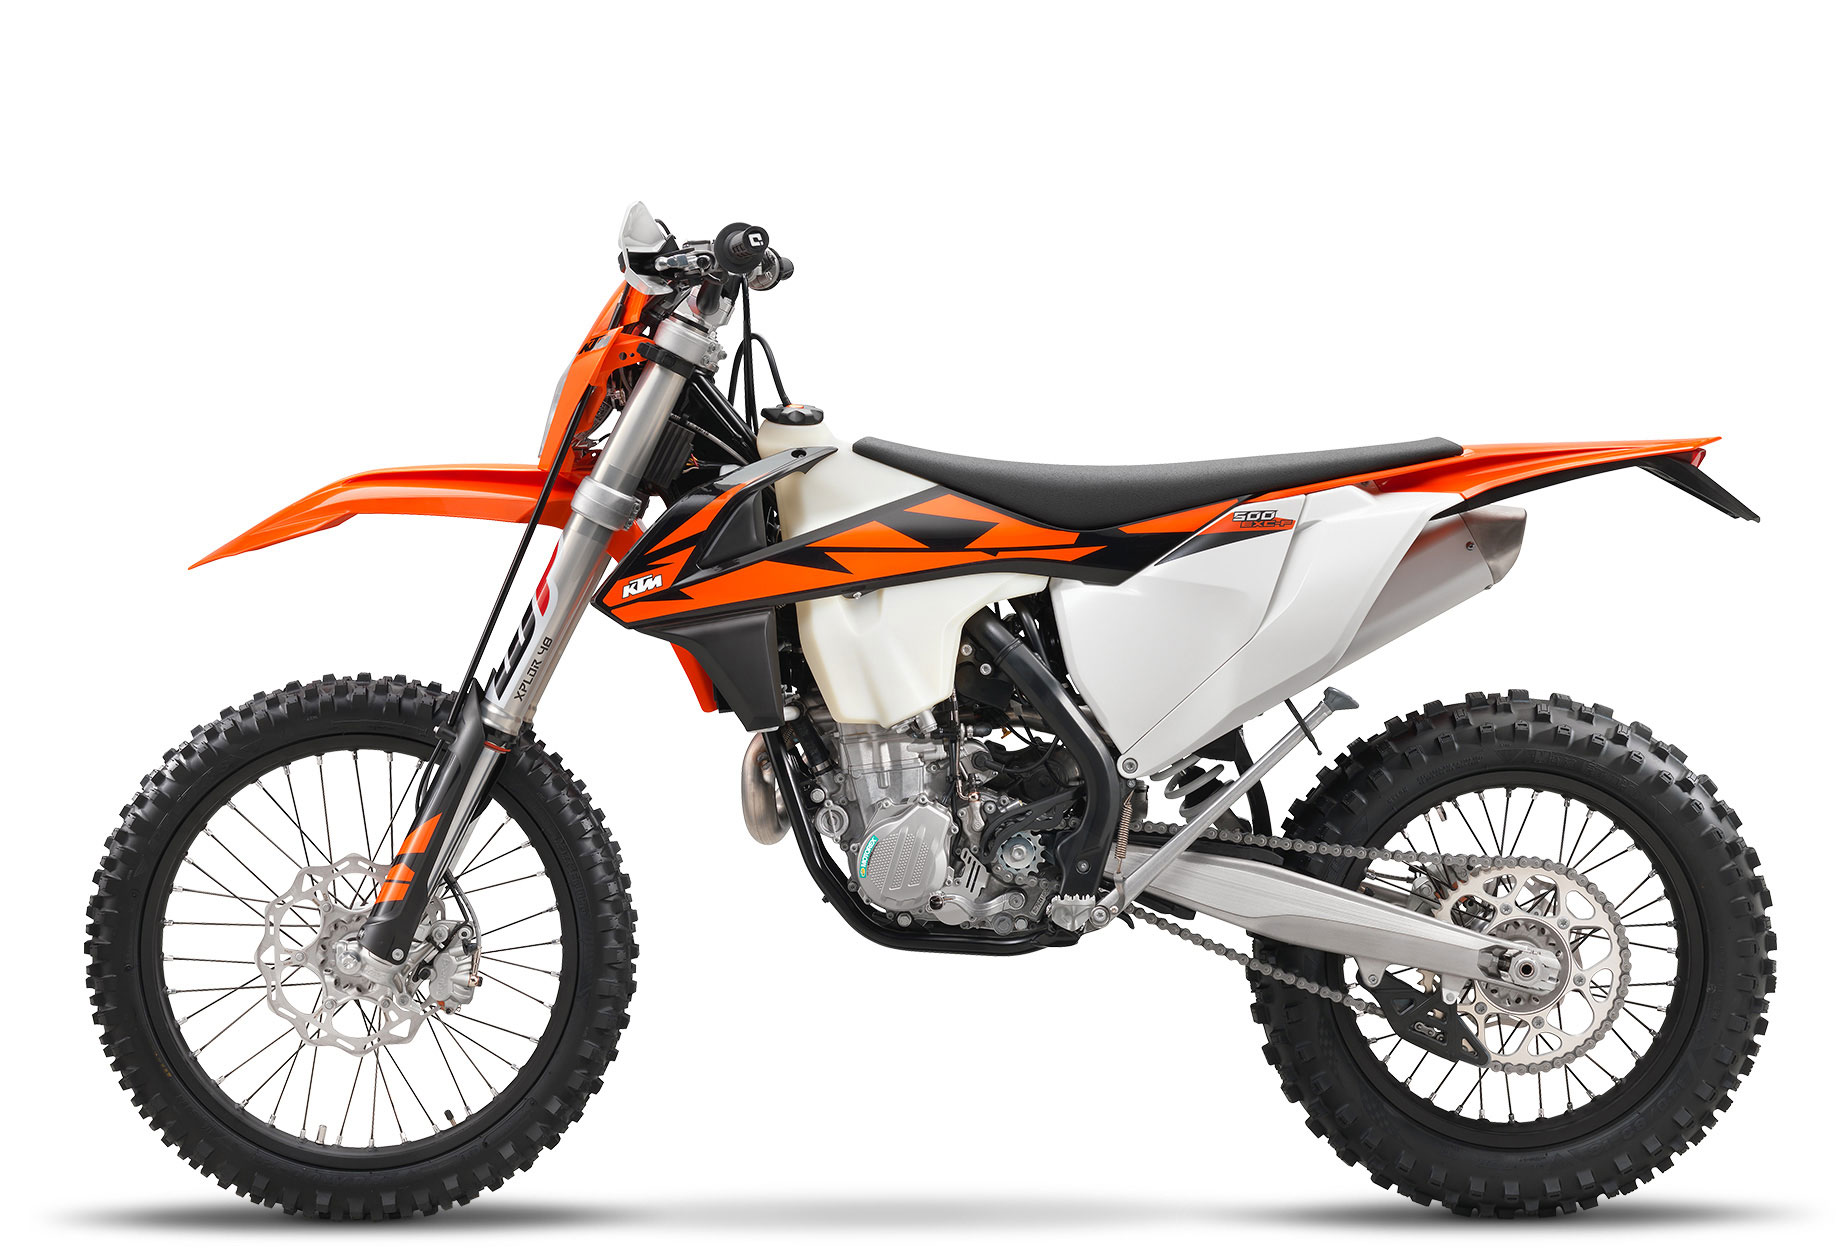 2018 KTM 500 EXC-F Review - TotalMotorcycle